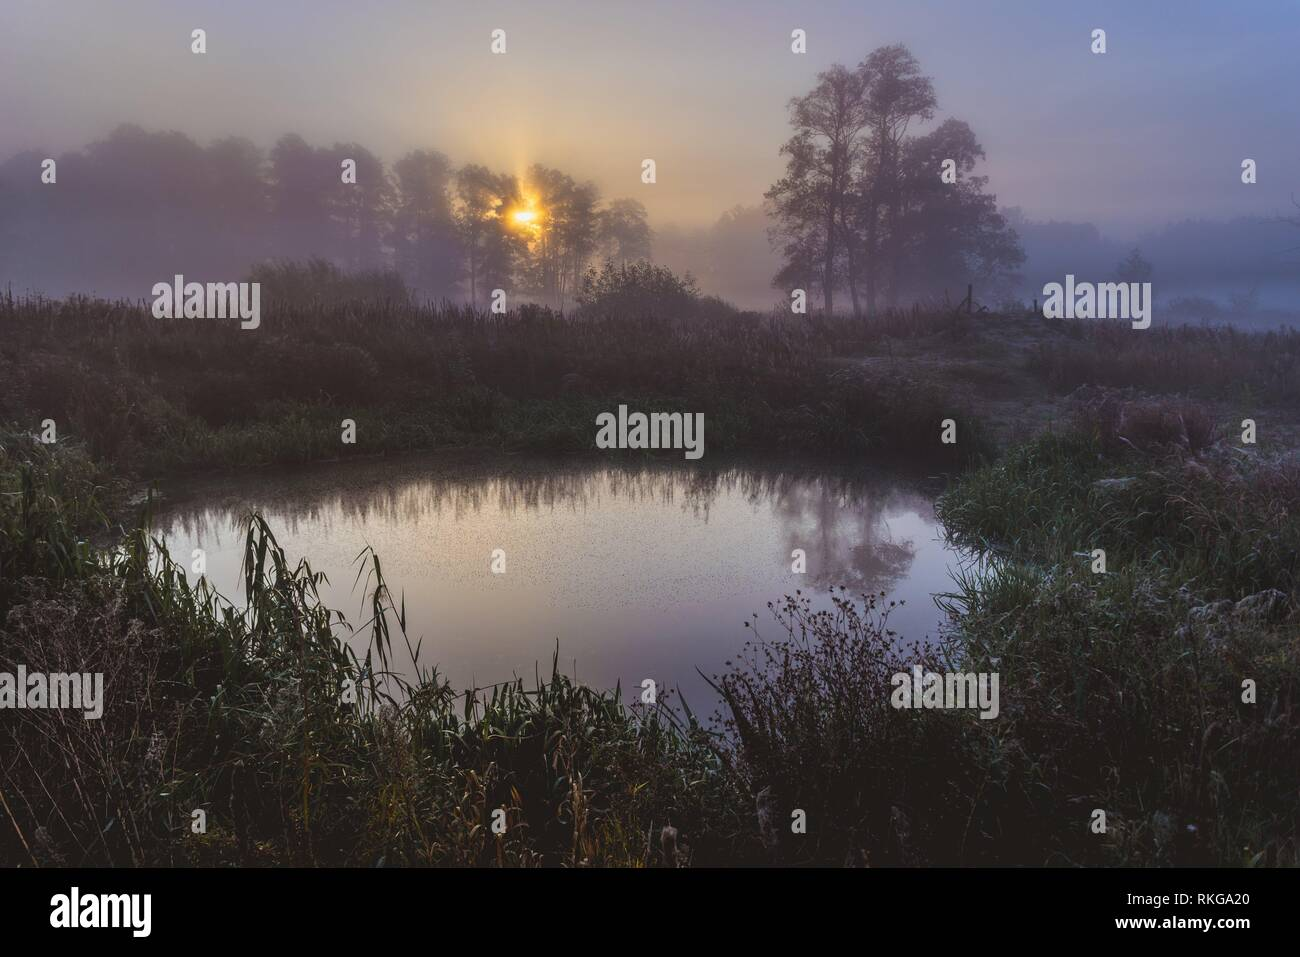 Small pond in Gorki village, Sochaczew County on the edge of Kampinos Forest, large forests complex in Masovian Voivodeship of Poland. - Stock Image